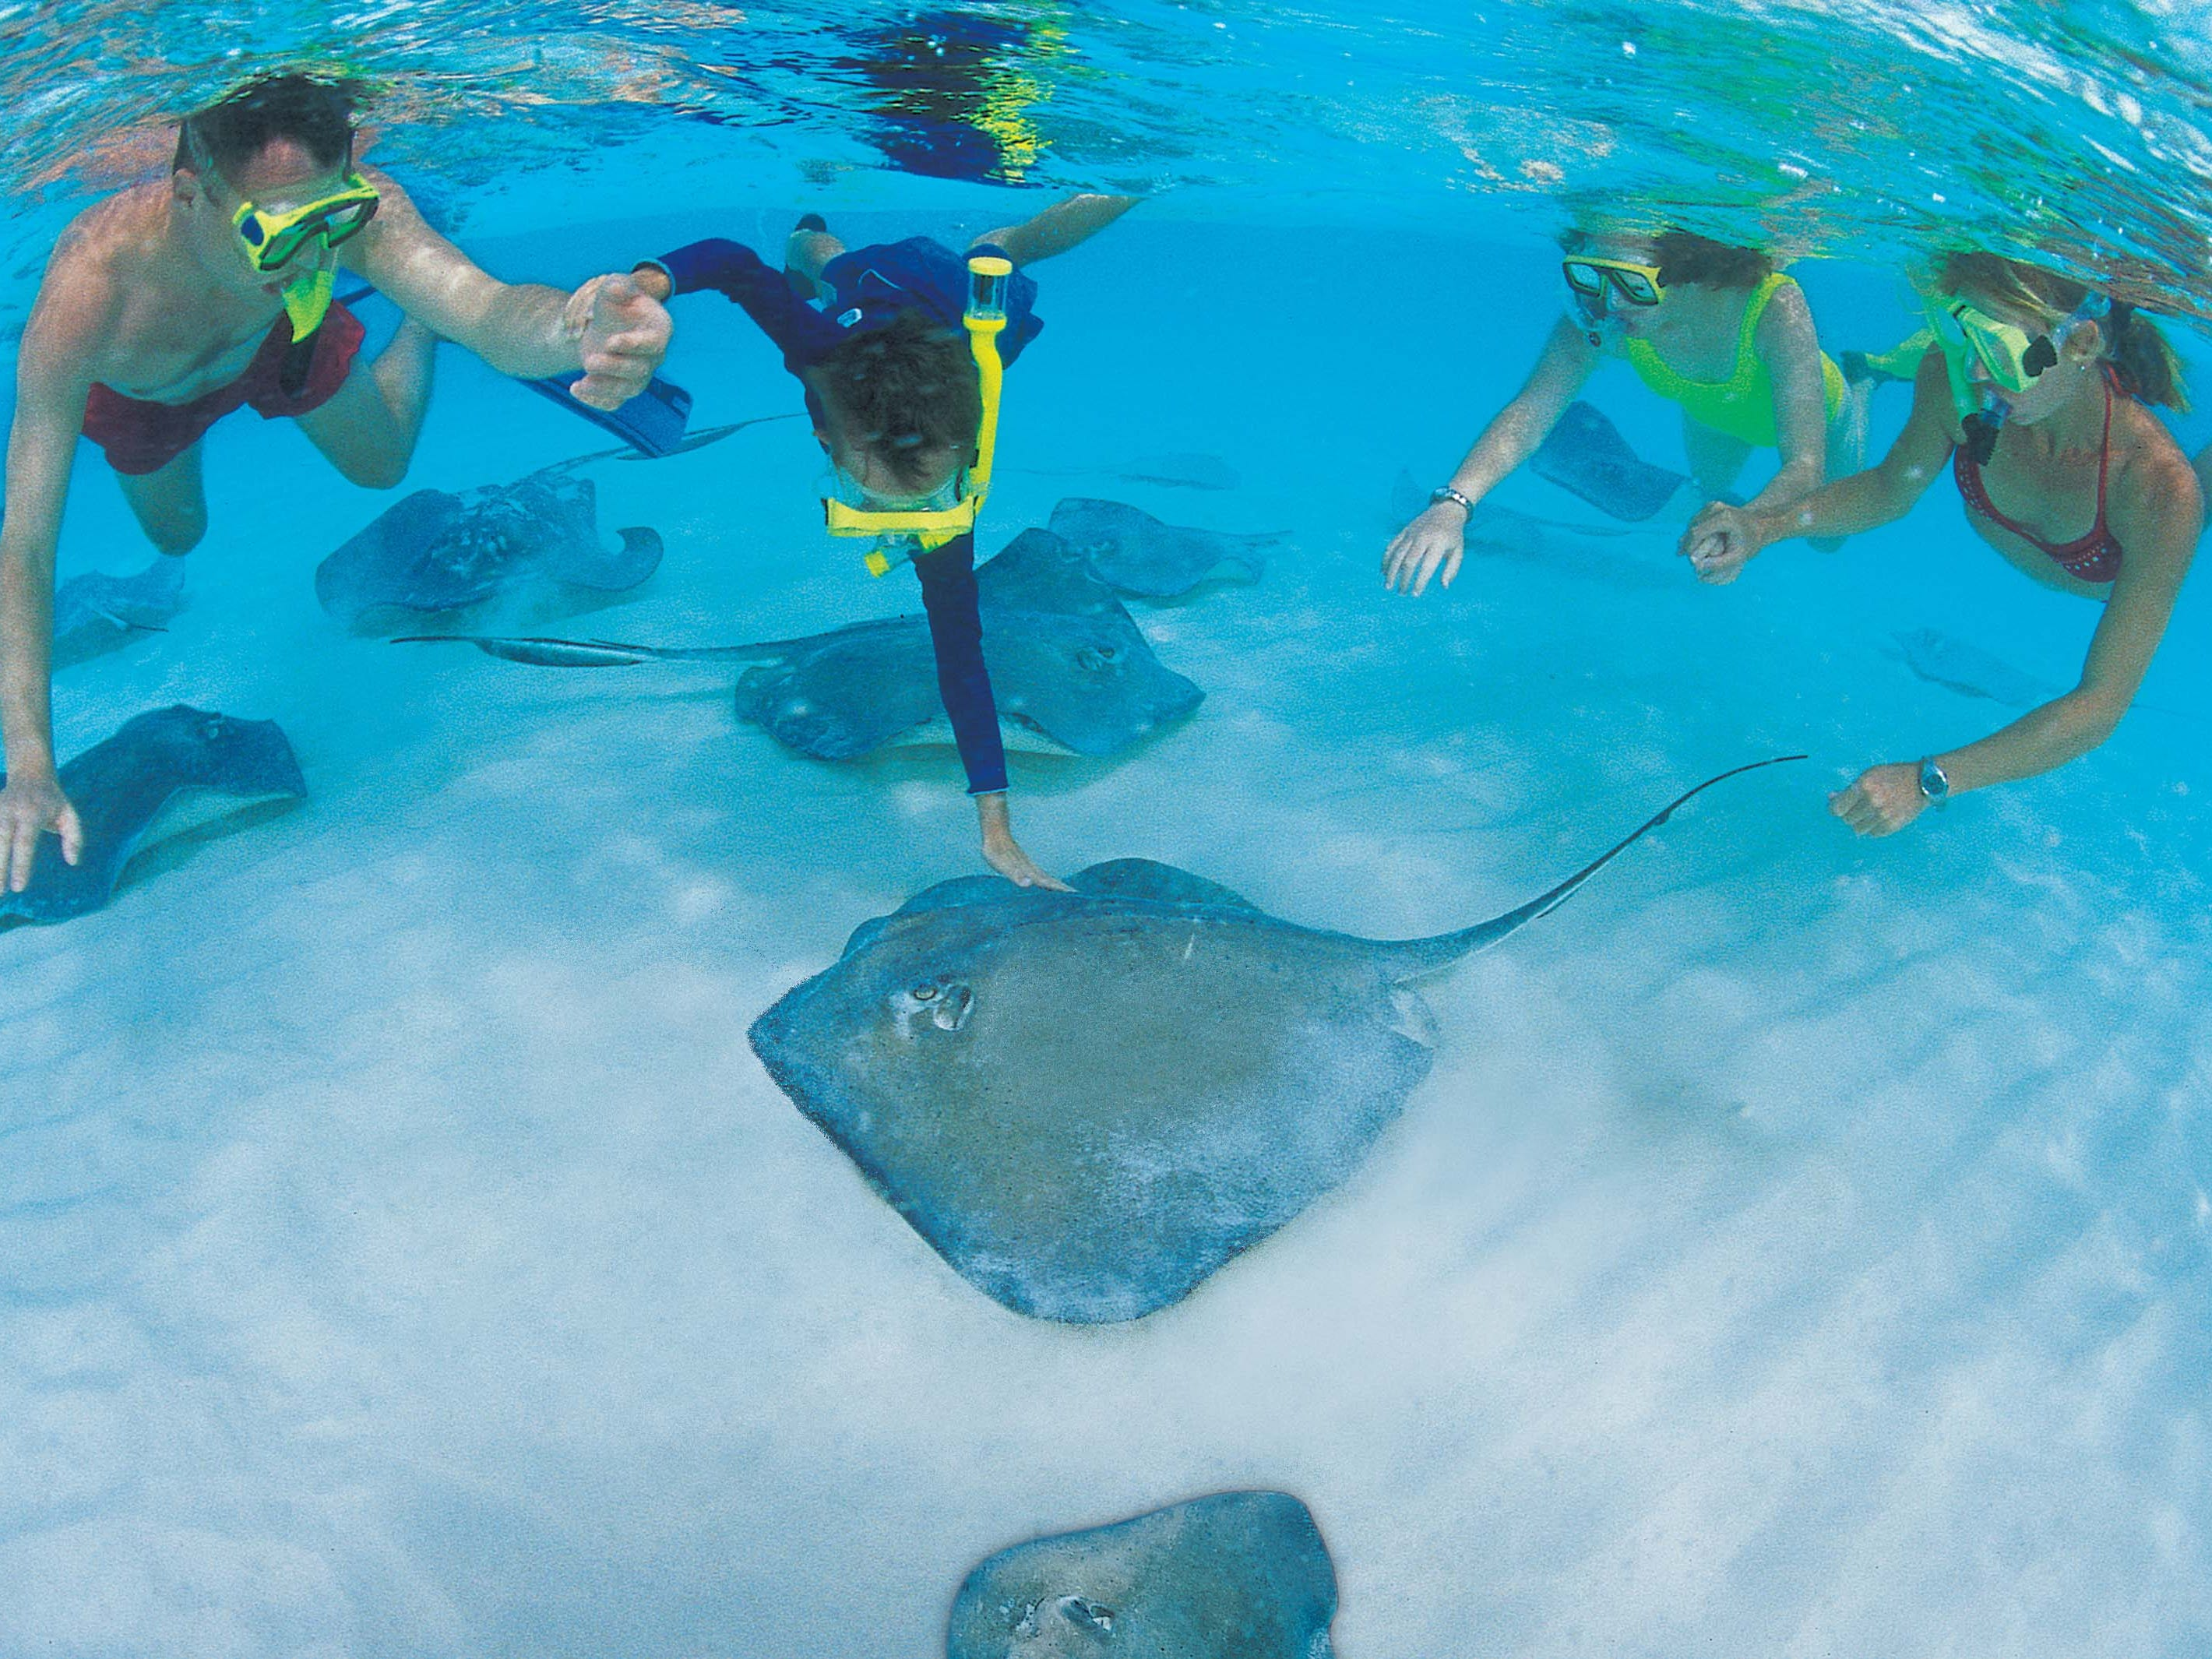 Crazy busy with tourists but worth a visit, Stingray City in Grand Cayman is easy snorkeling along a shallow sandbar.